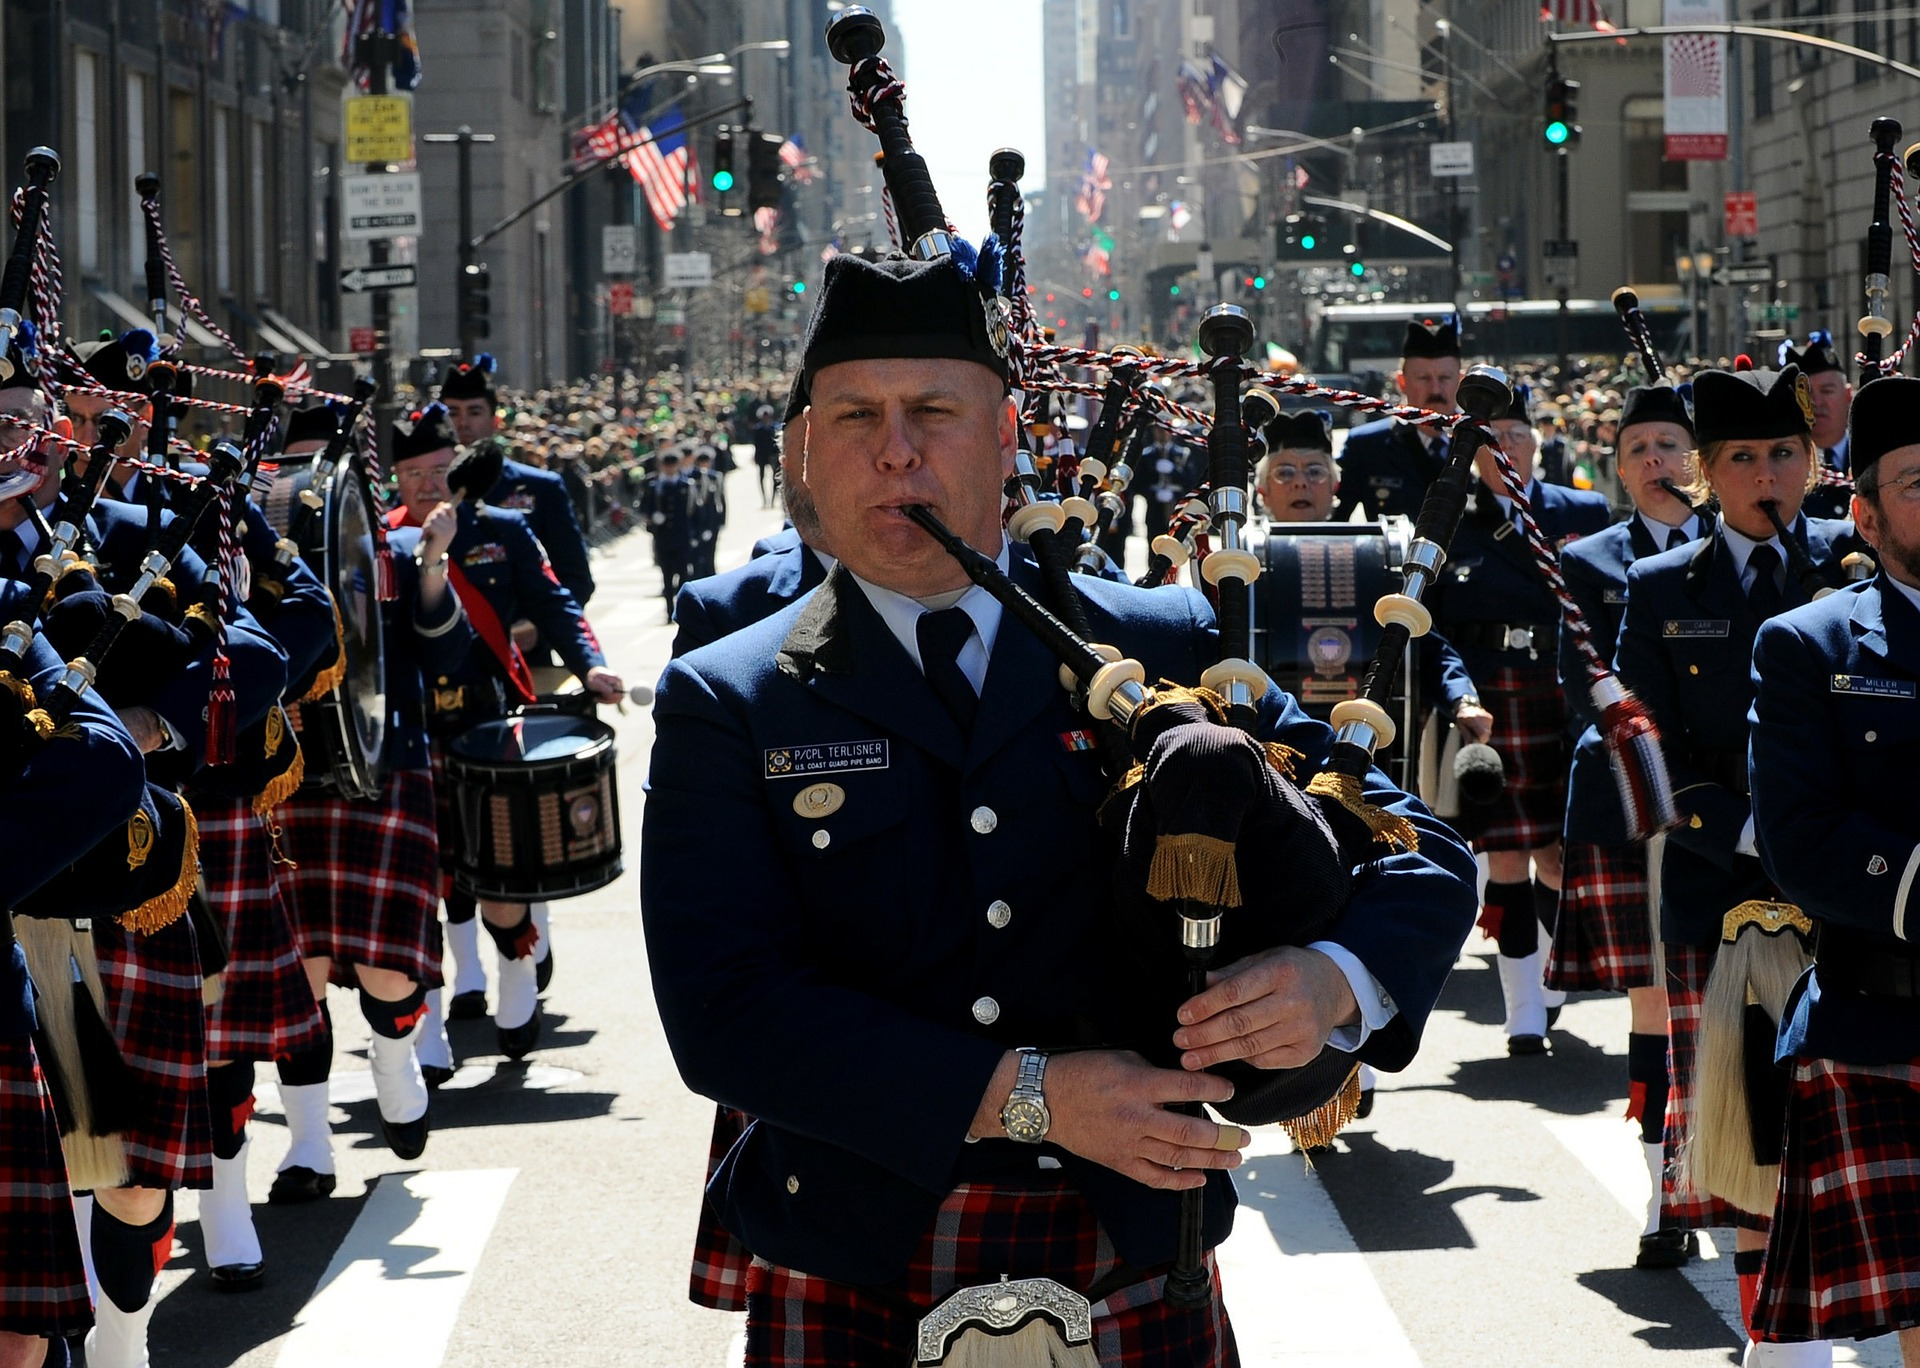 Join McCready Law at the South Side Irish Parade, Cook, Illinois, United States